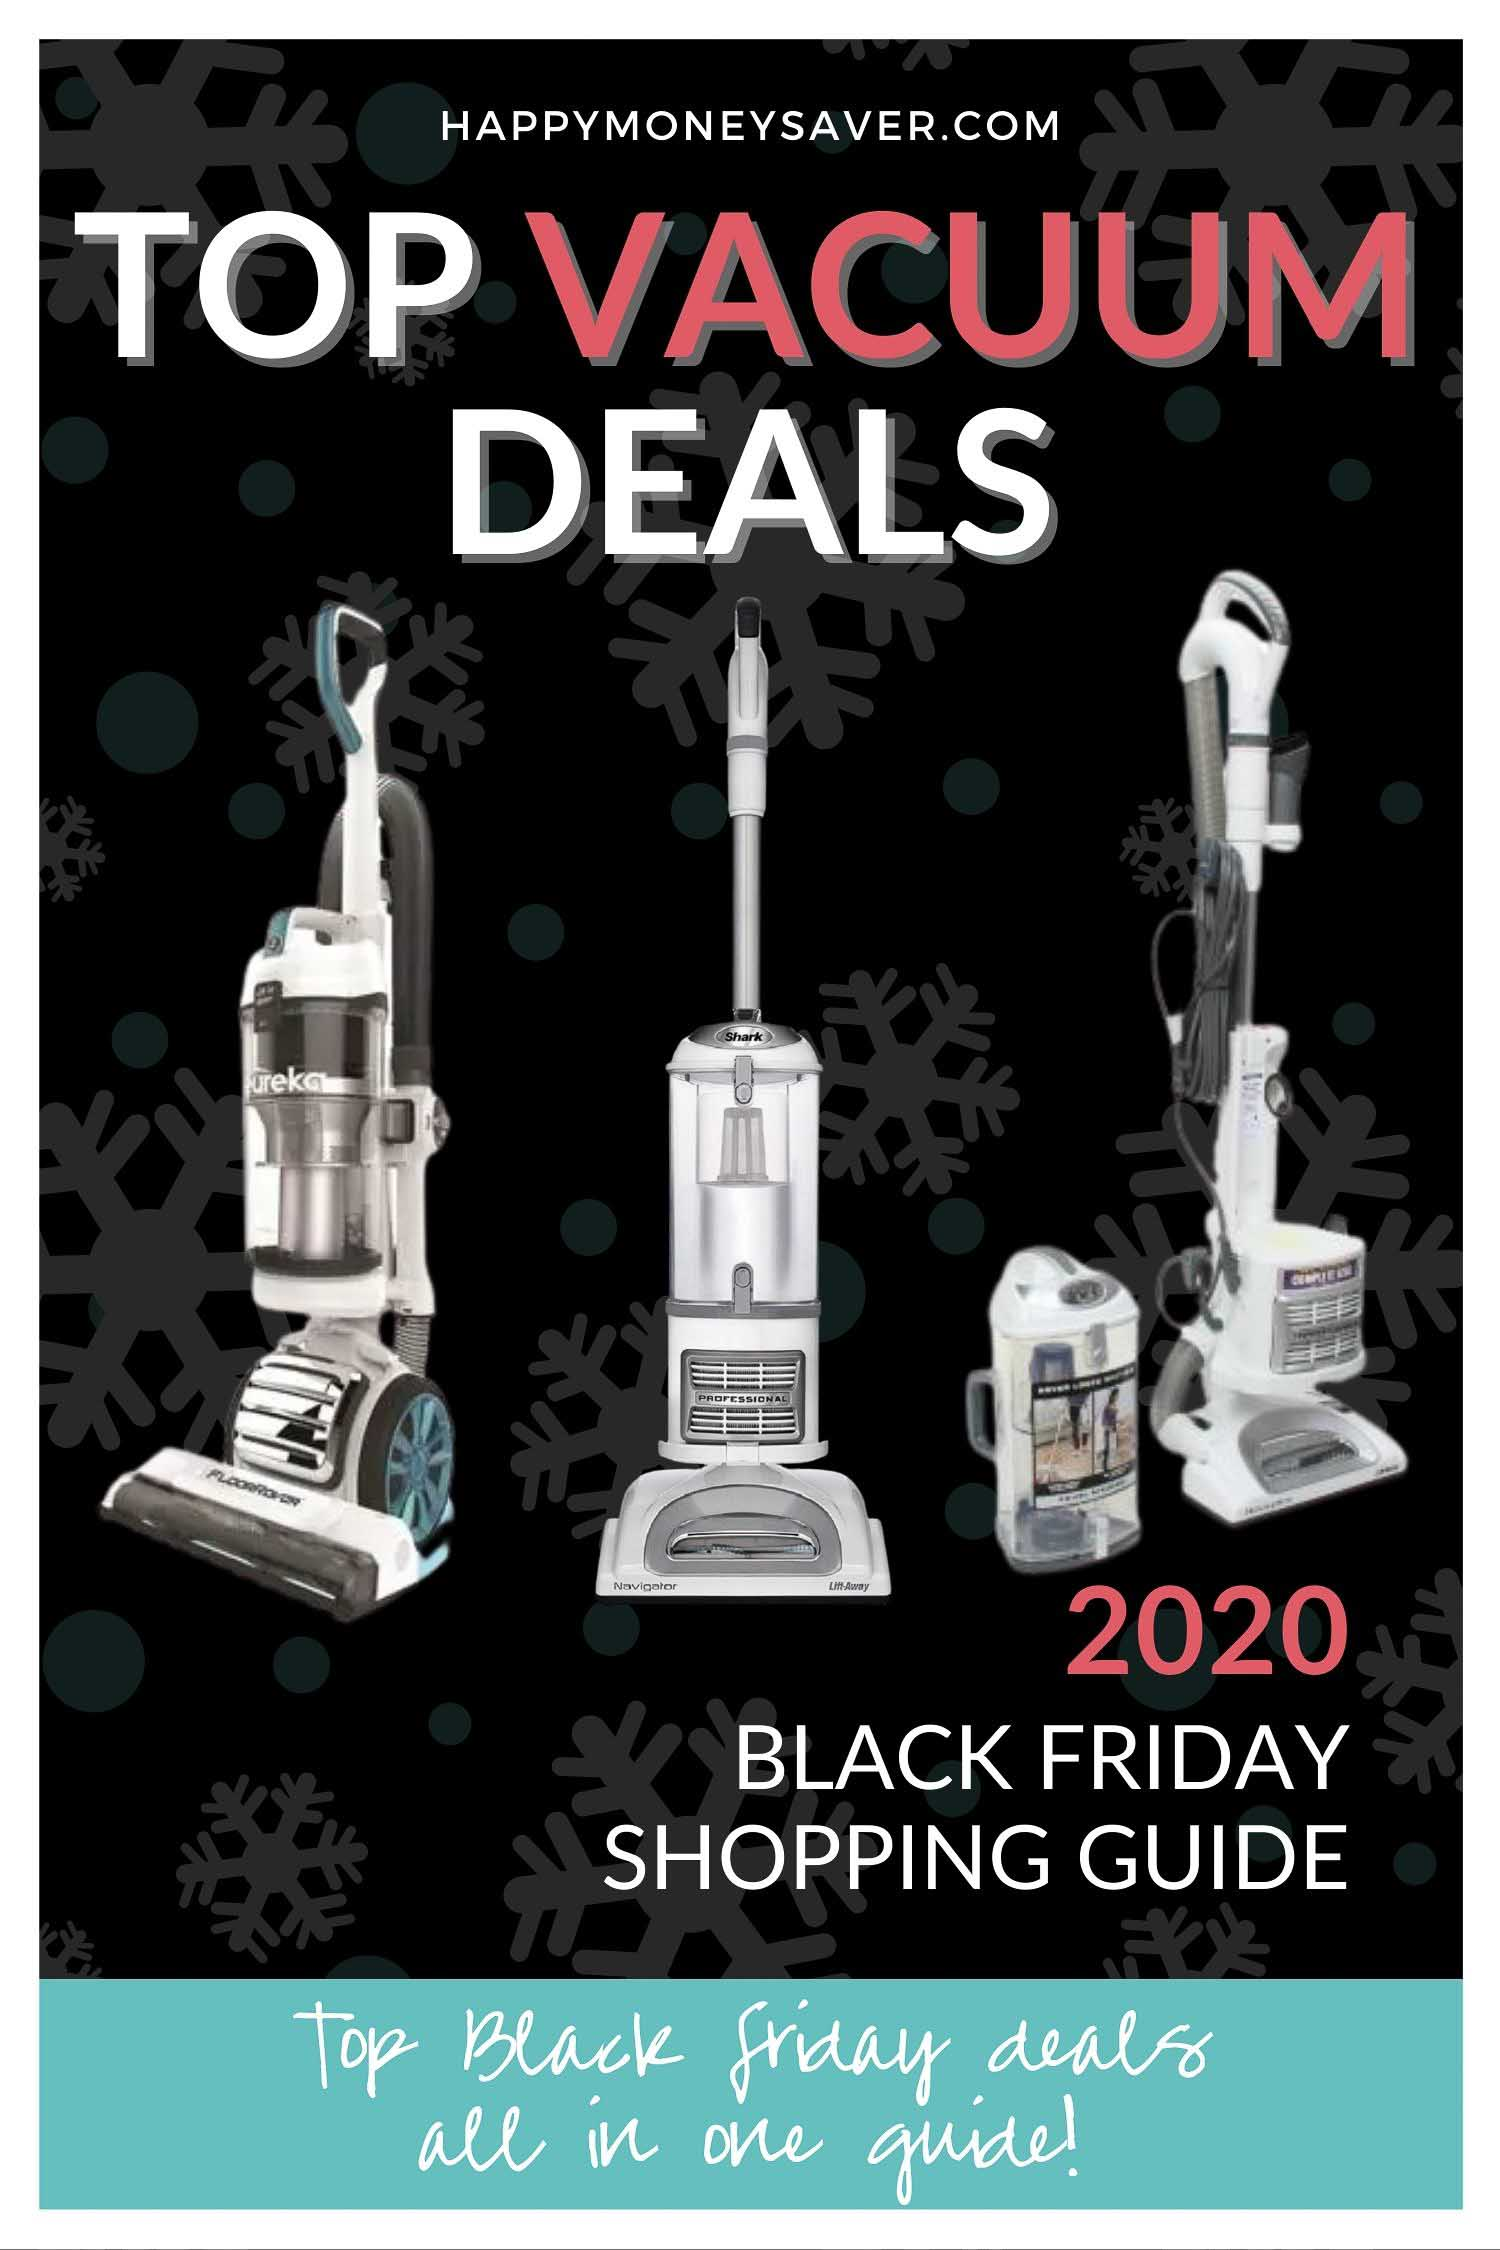 HUGE roundup of all the vacuum deals for Black Friday 2020! Black Friday Dyson deals, Robot vacuum, Hoover, Shark + more. Research is all done for you! You're gonna love this if you love saving money!